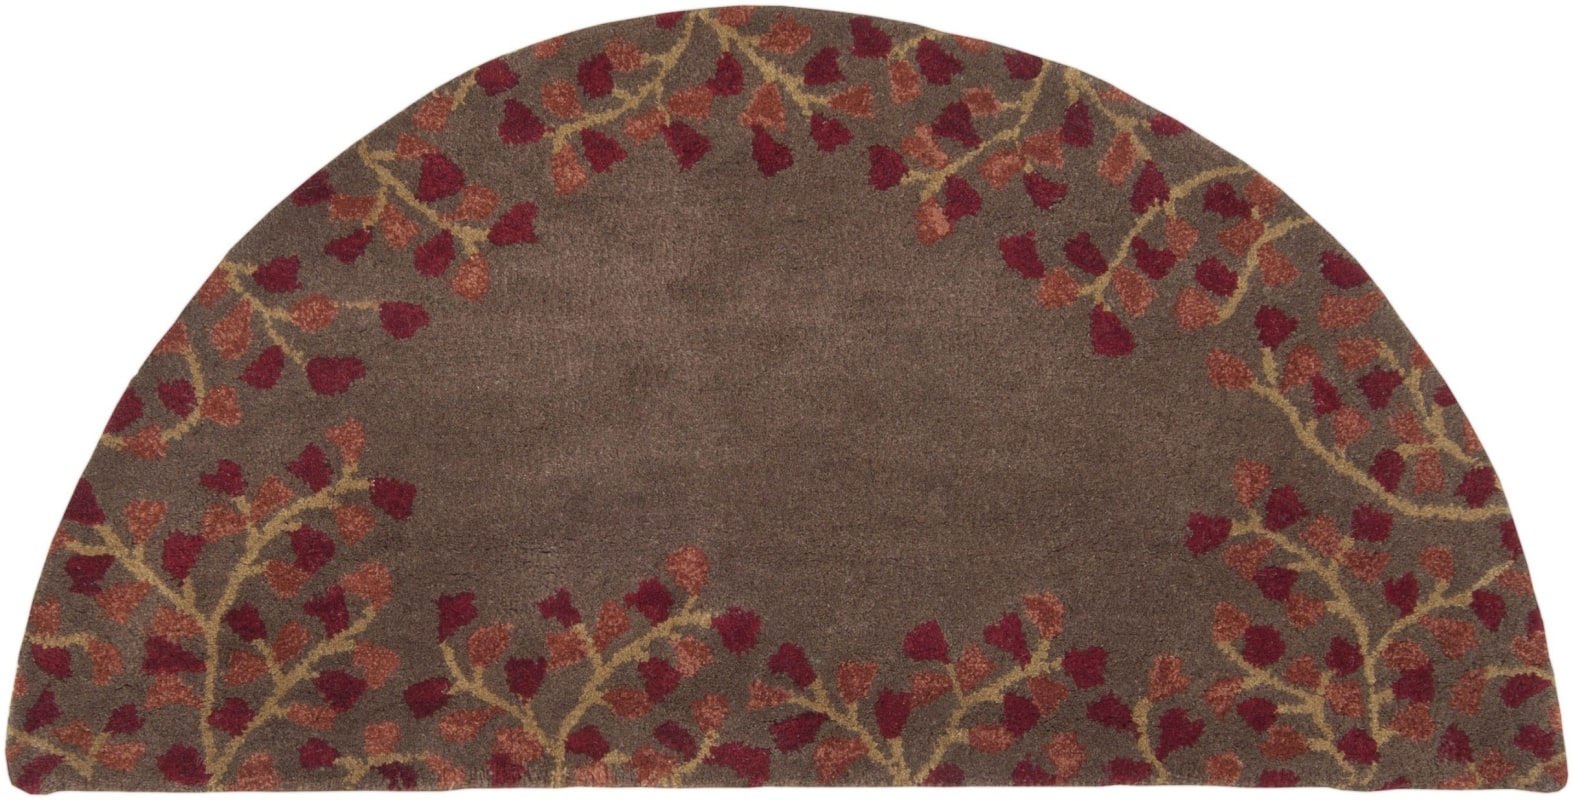 Surya ATH-5003 Athena Hand Tufted Wool Rug Red 9 x 12 Home Decor Rugs